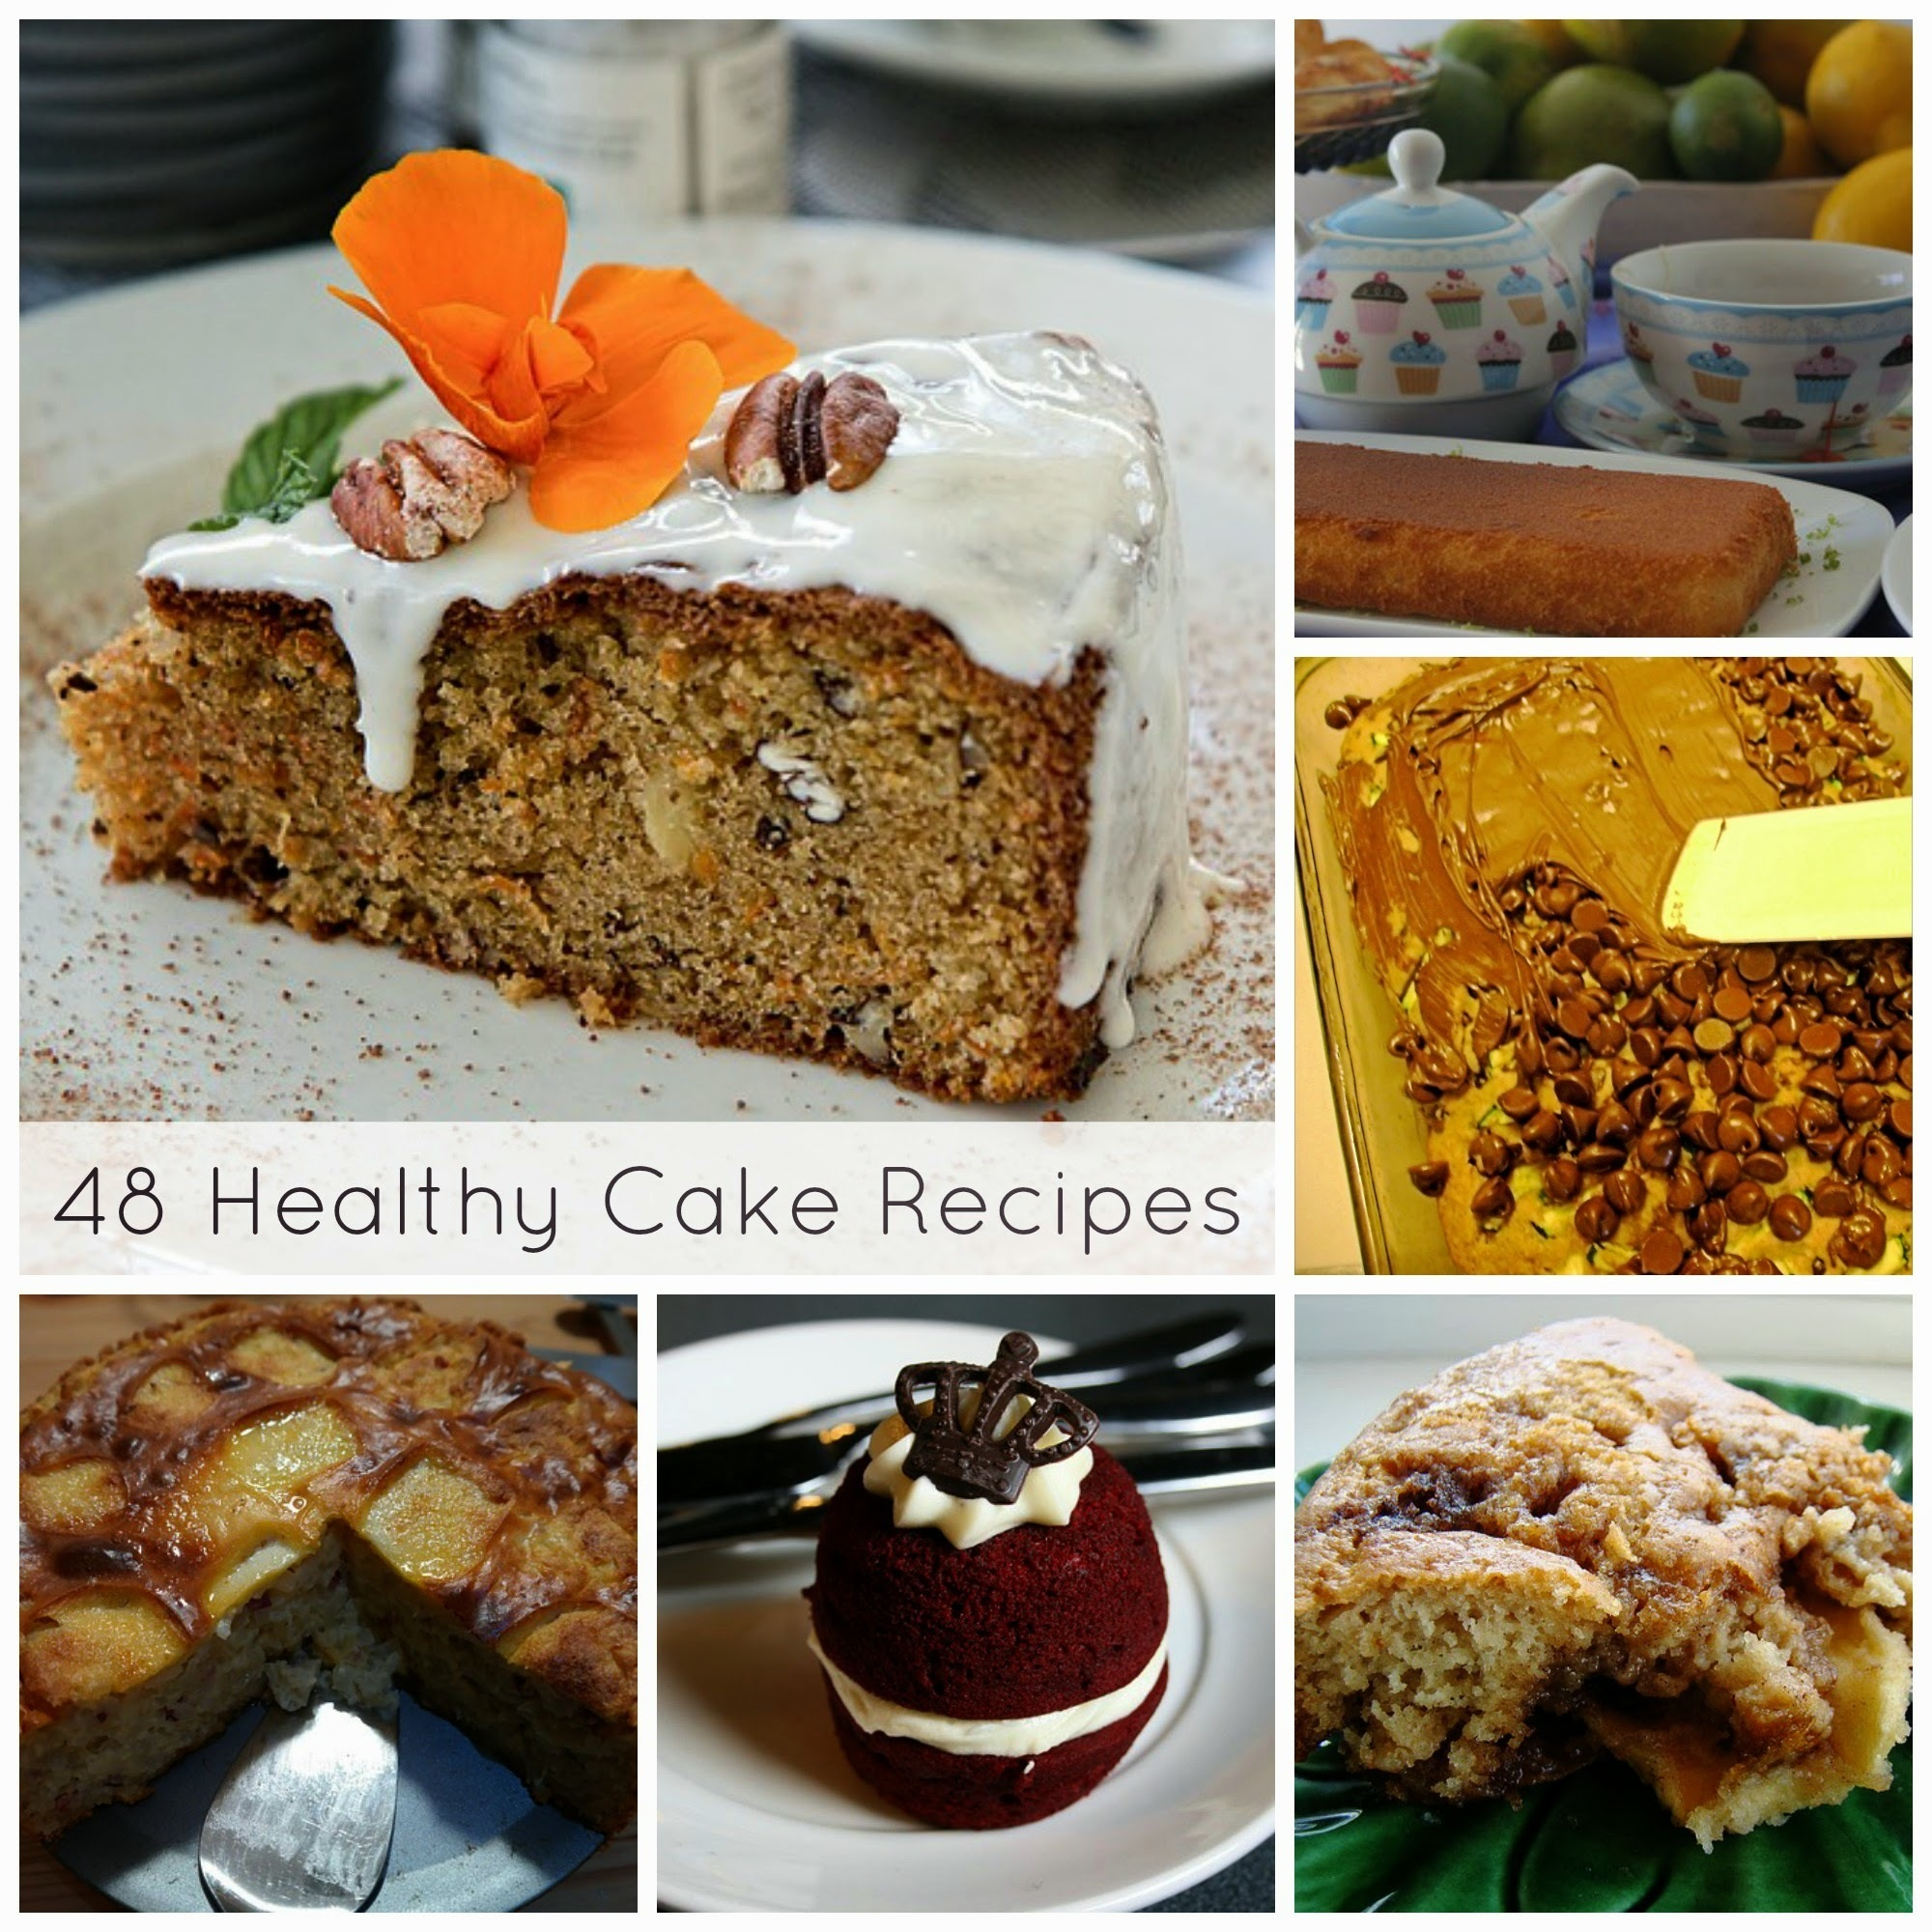 48 Healthy Cake Recipes